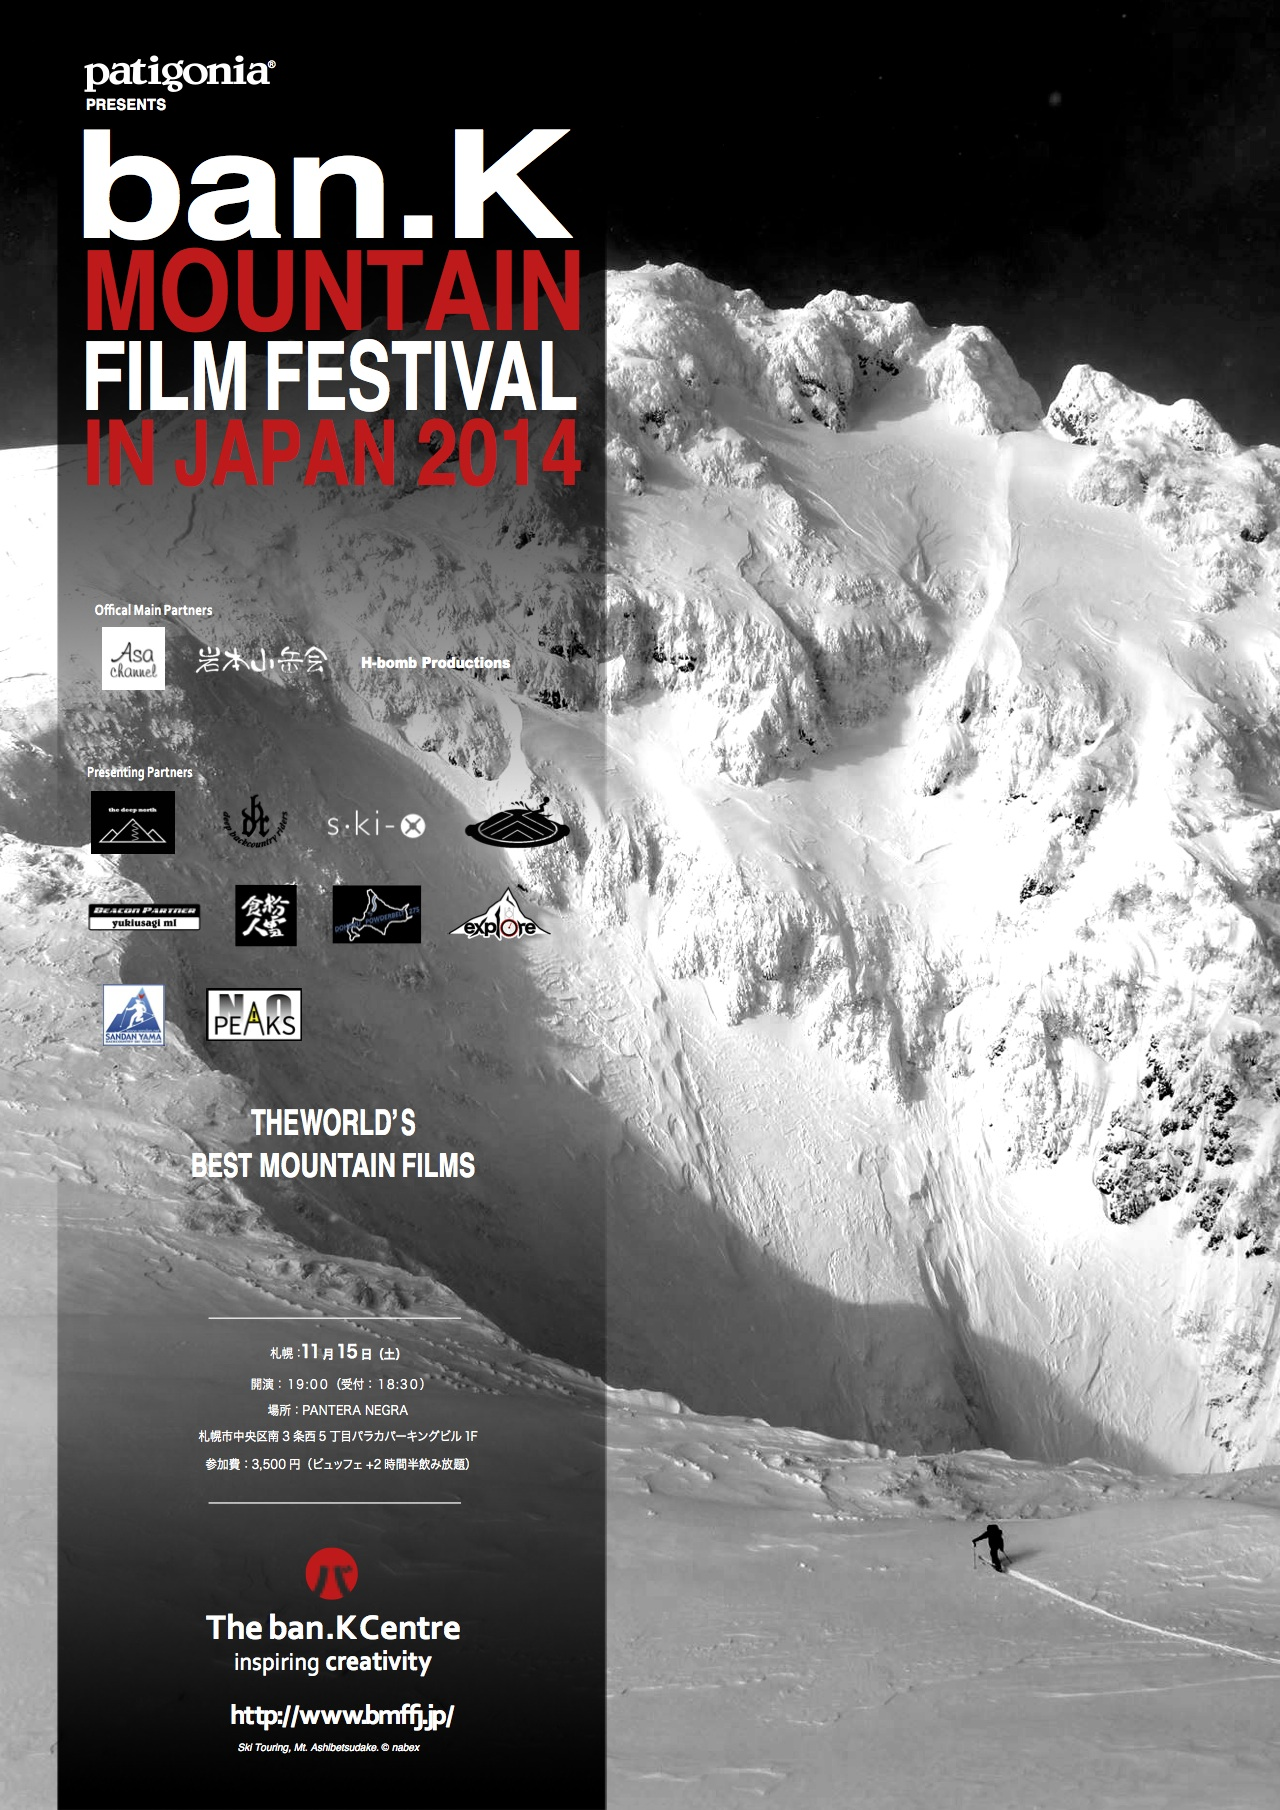 ban.K Mountain Film Festival in Japan 2014